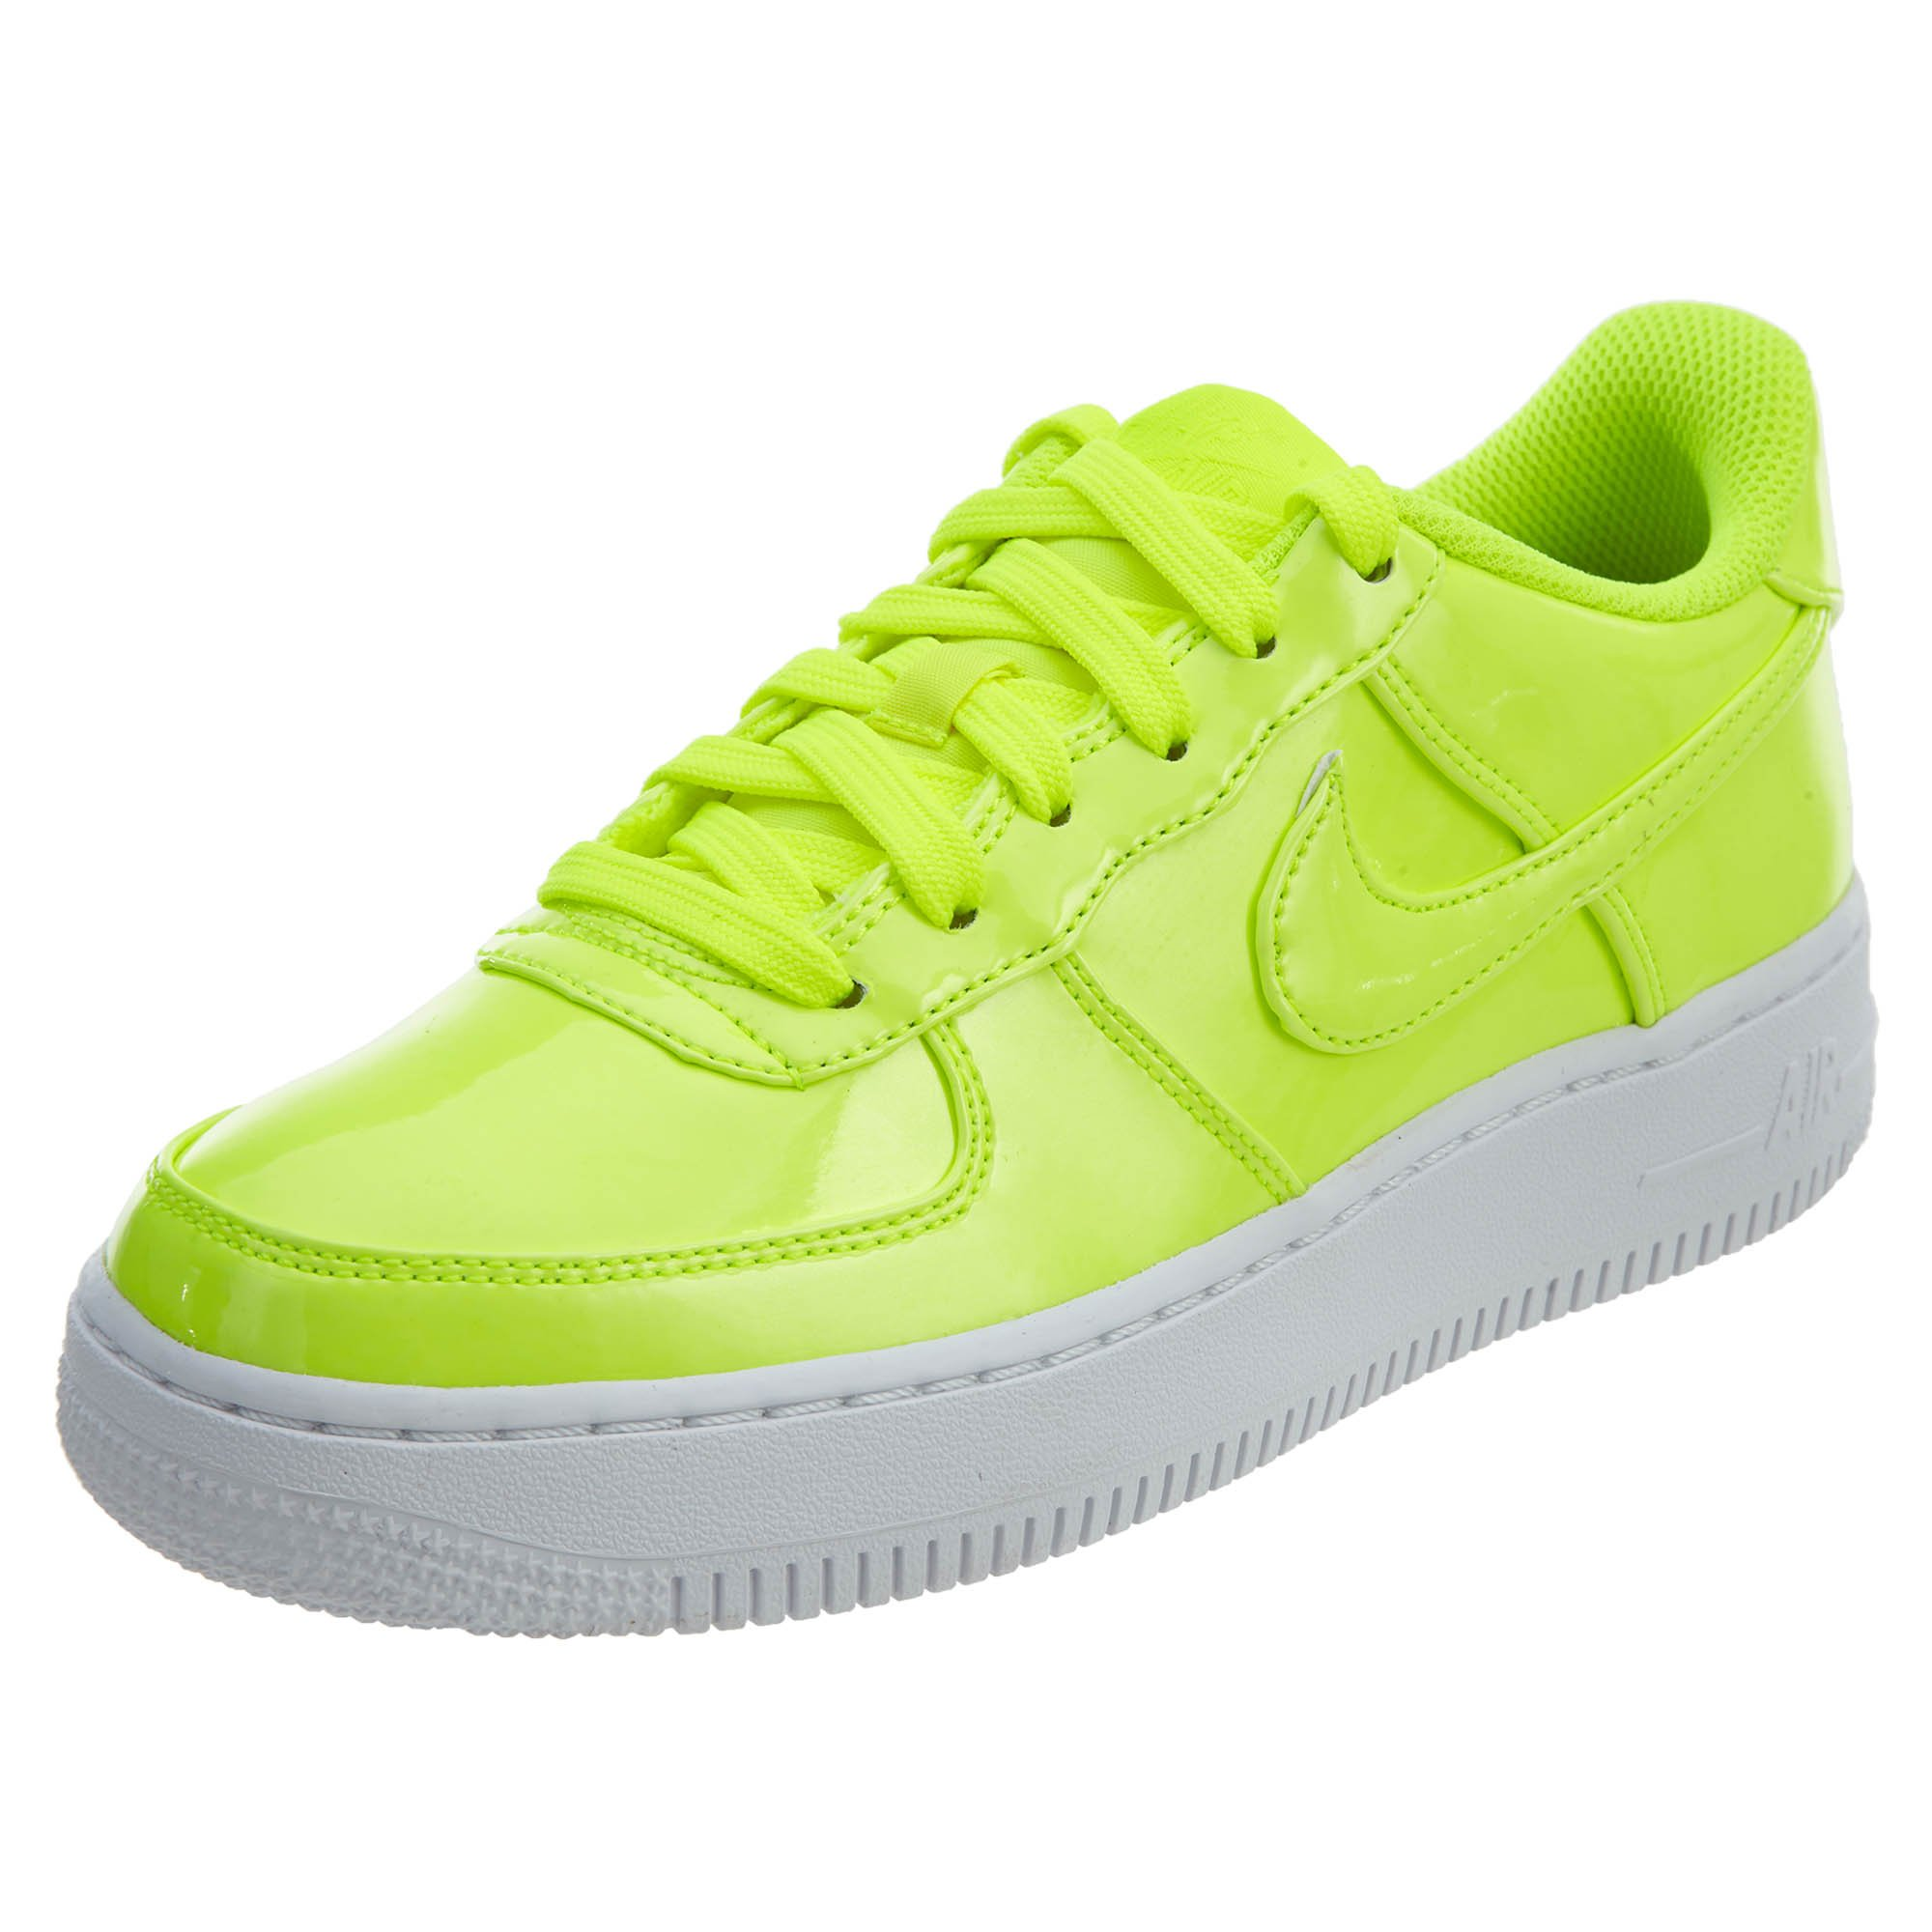 Nike AIR Force 1 LV8 UV (GS) Boys Basketball-Shoes AO2286-700_4Y - Volt/Volt-White-White